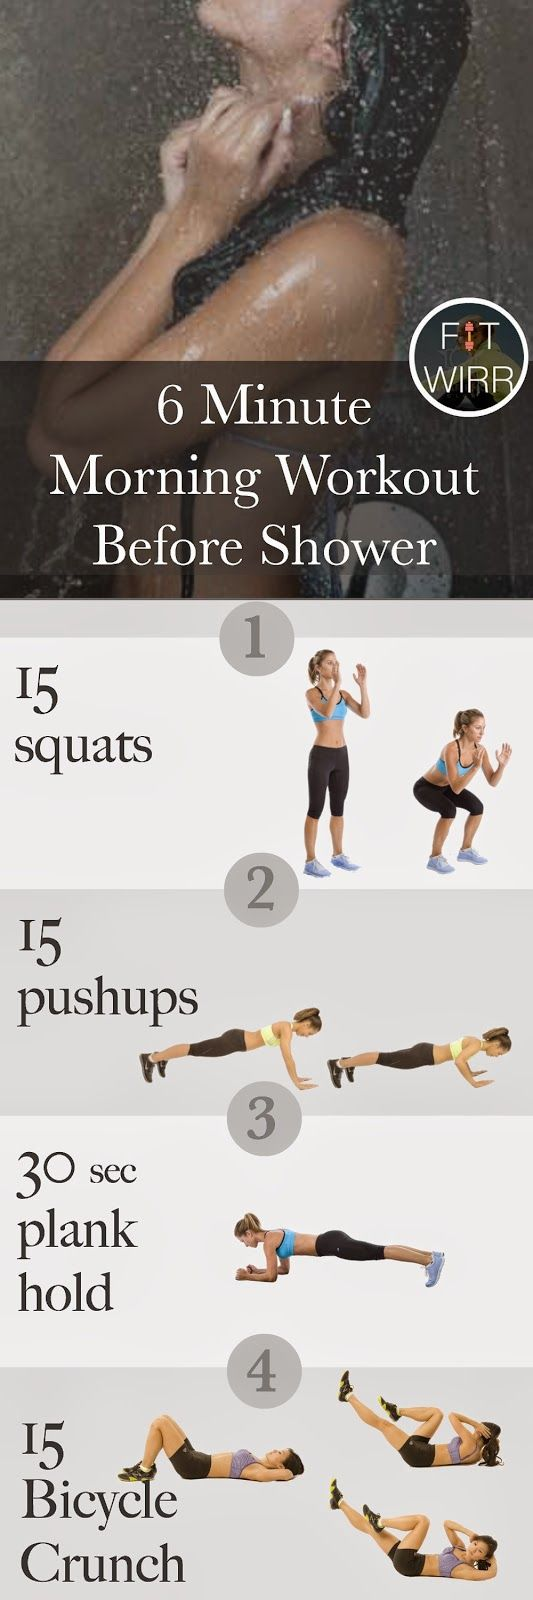 6 Minute Morning Workout Before Shower